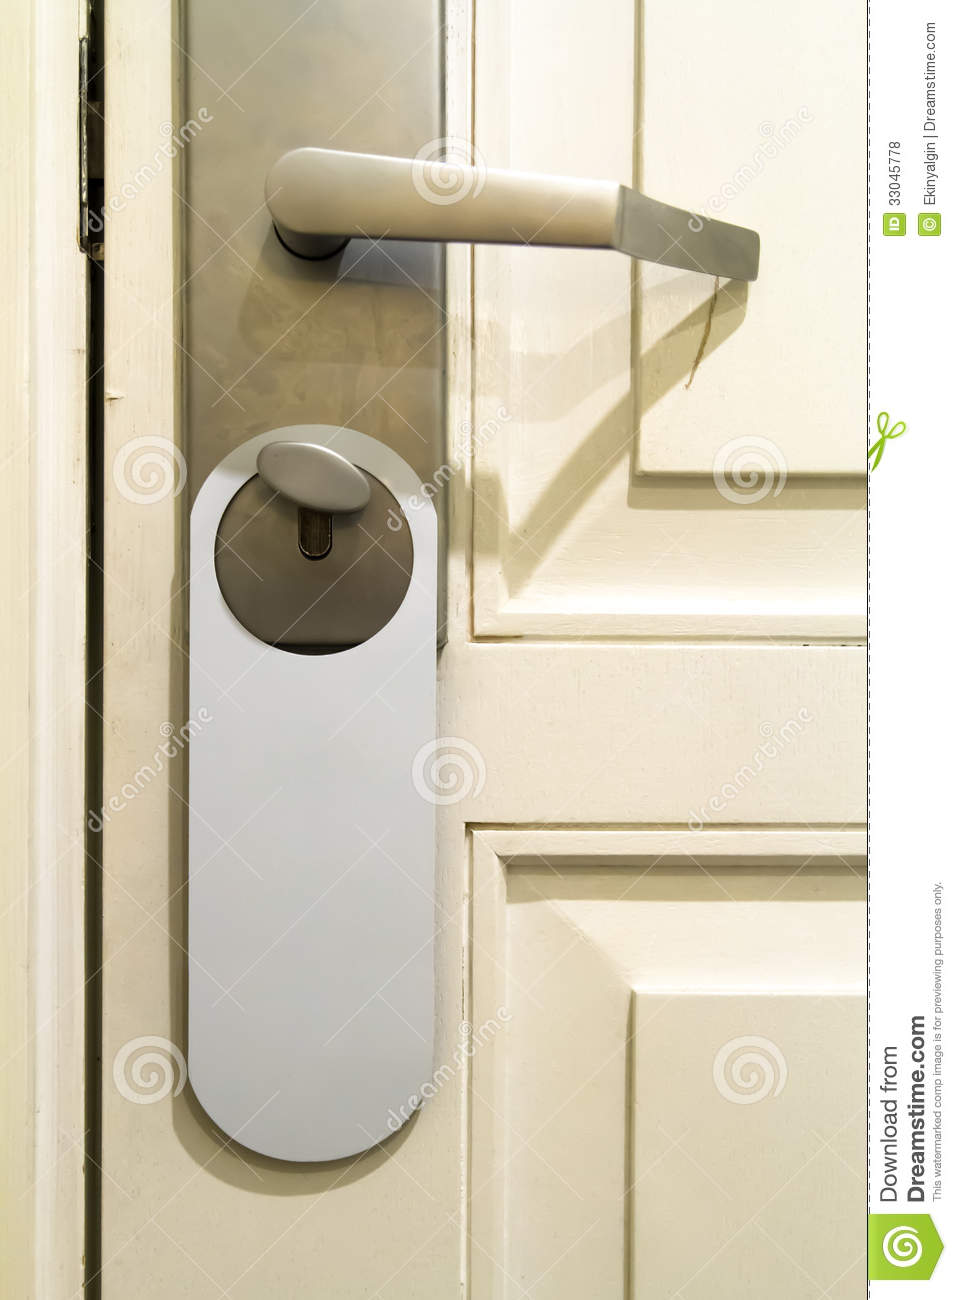 Inside Hotel Room Door: Door Handle With Hanging Sign Royalty Free Stock Photos